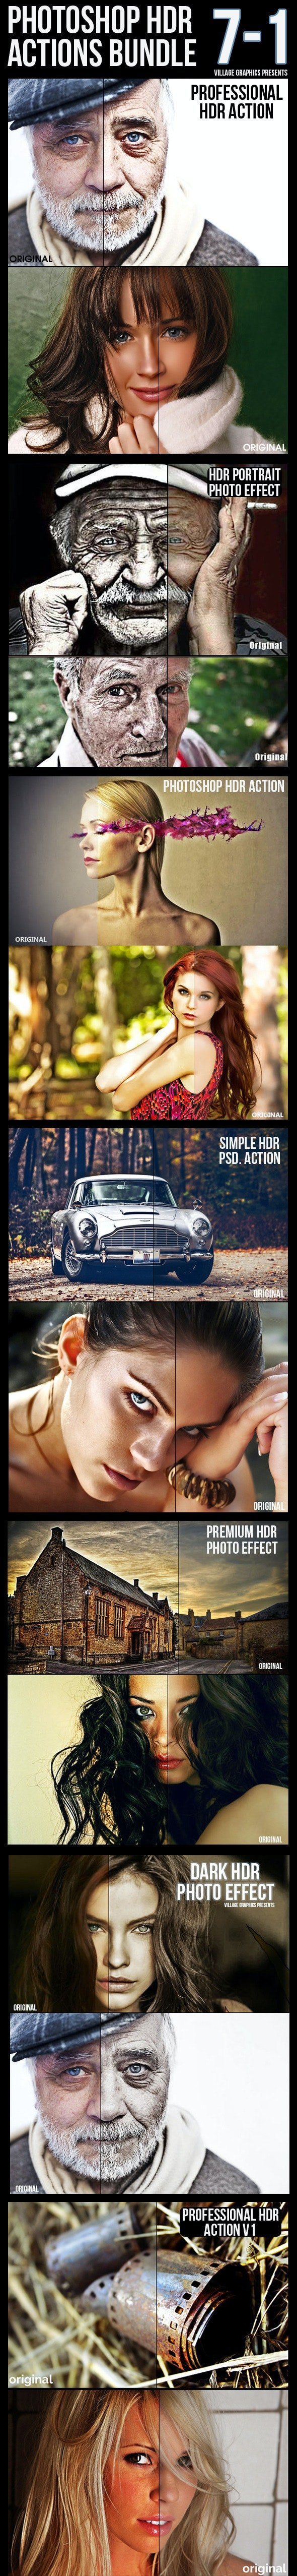 7-1 HDR Actions Bundle - Photo Effects Actions